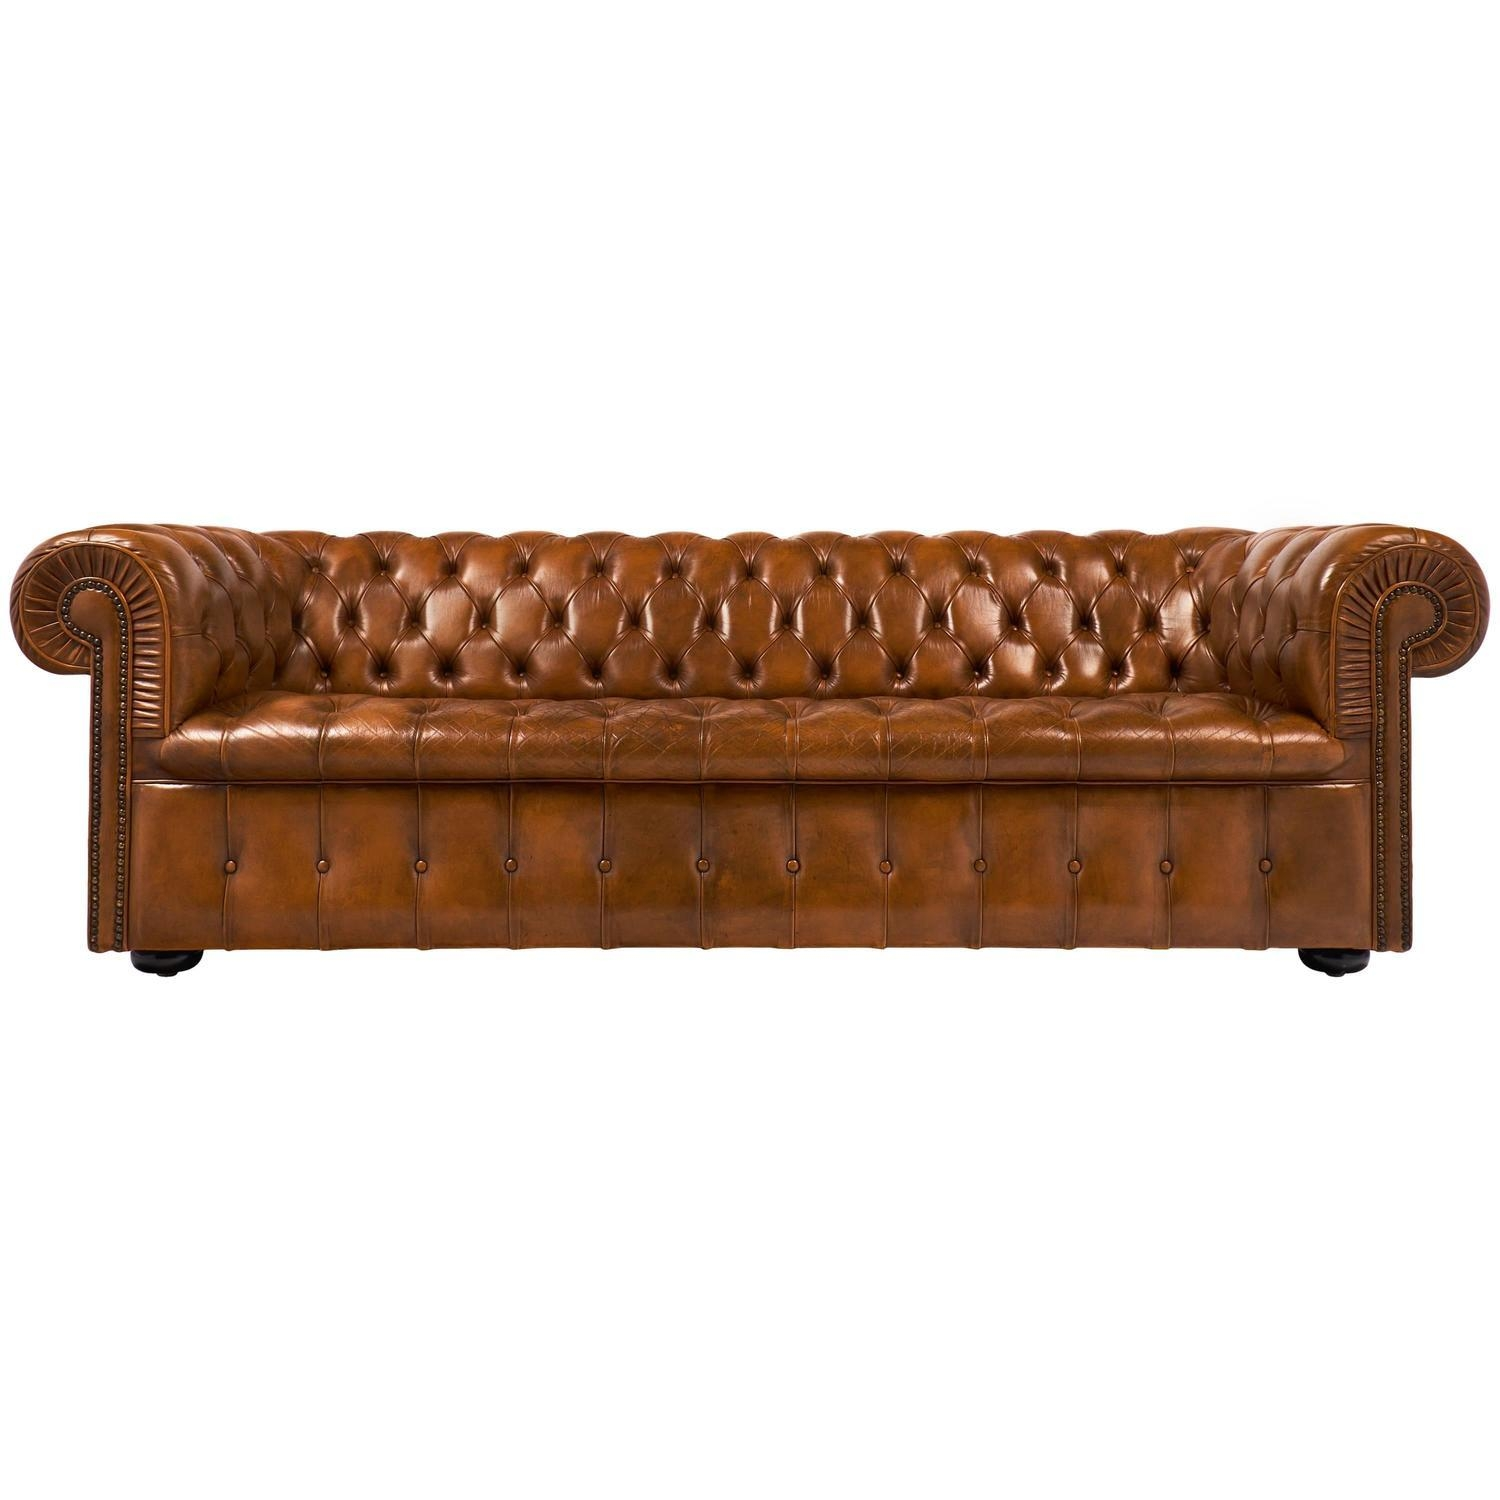 Vintage English Cognac Leather Chesterfield Sofa At 1Stdibs With Red Leather Chesterfield Sofas (Image 20 of 20)